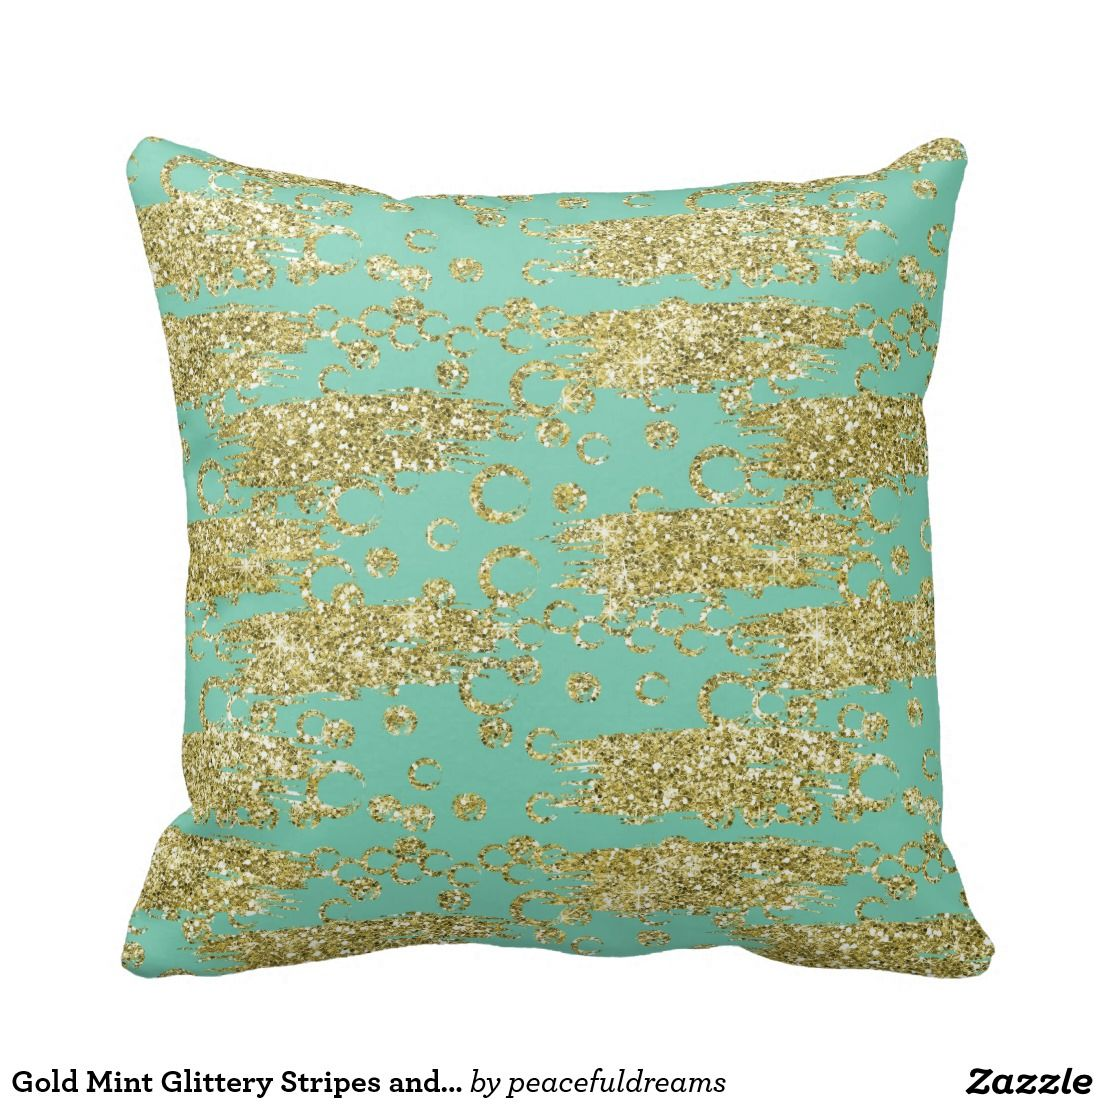 Gold Mint Glittery Stripes and Circles Pillow